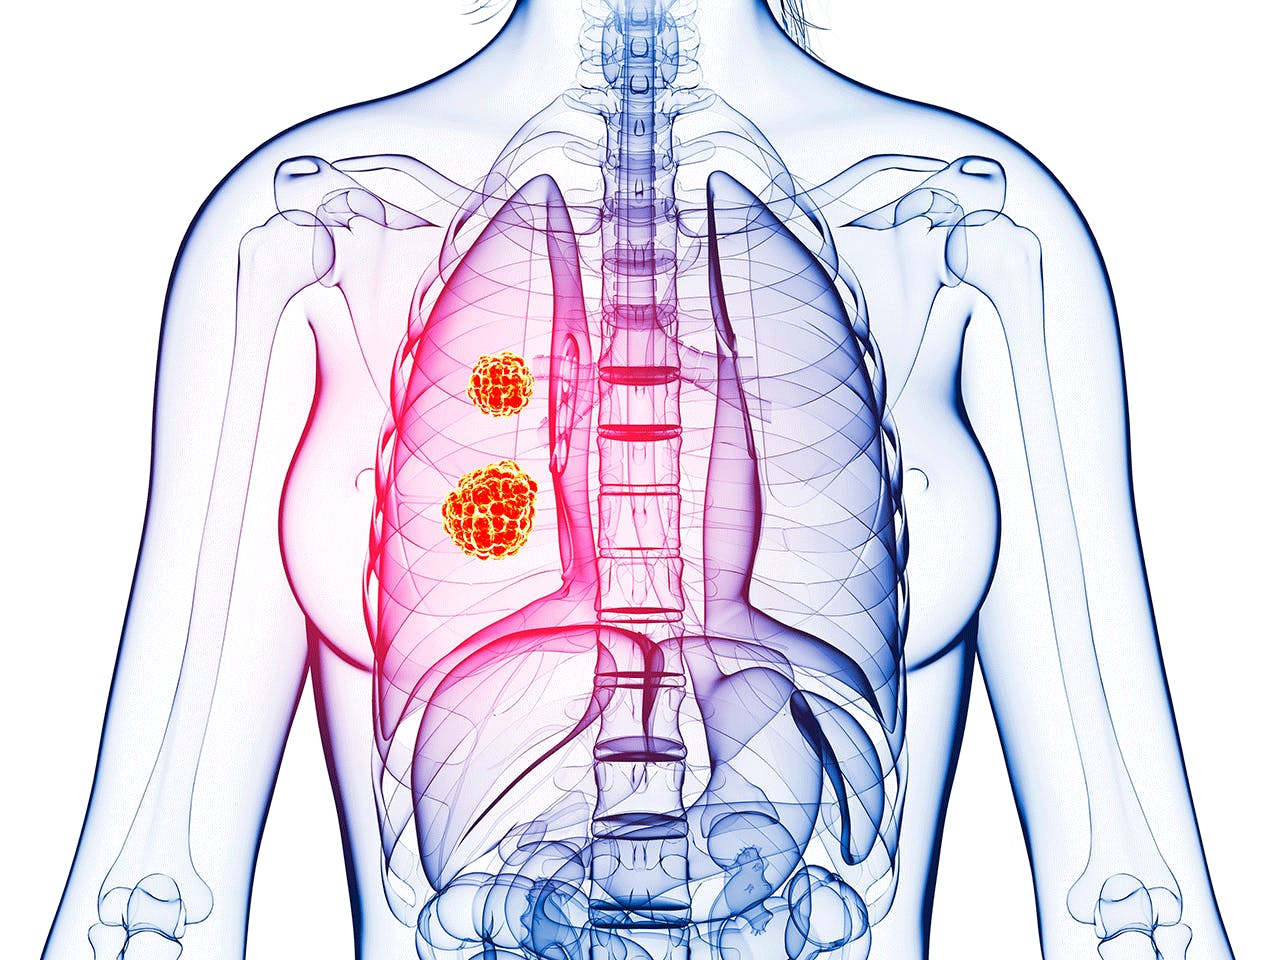 New Robotic Diagnosis Tool Targets Lung Cancer